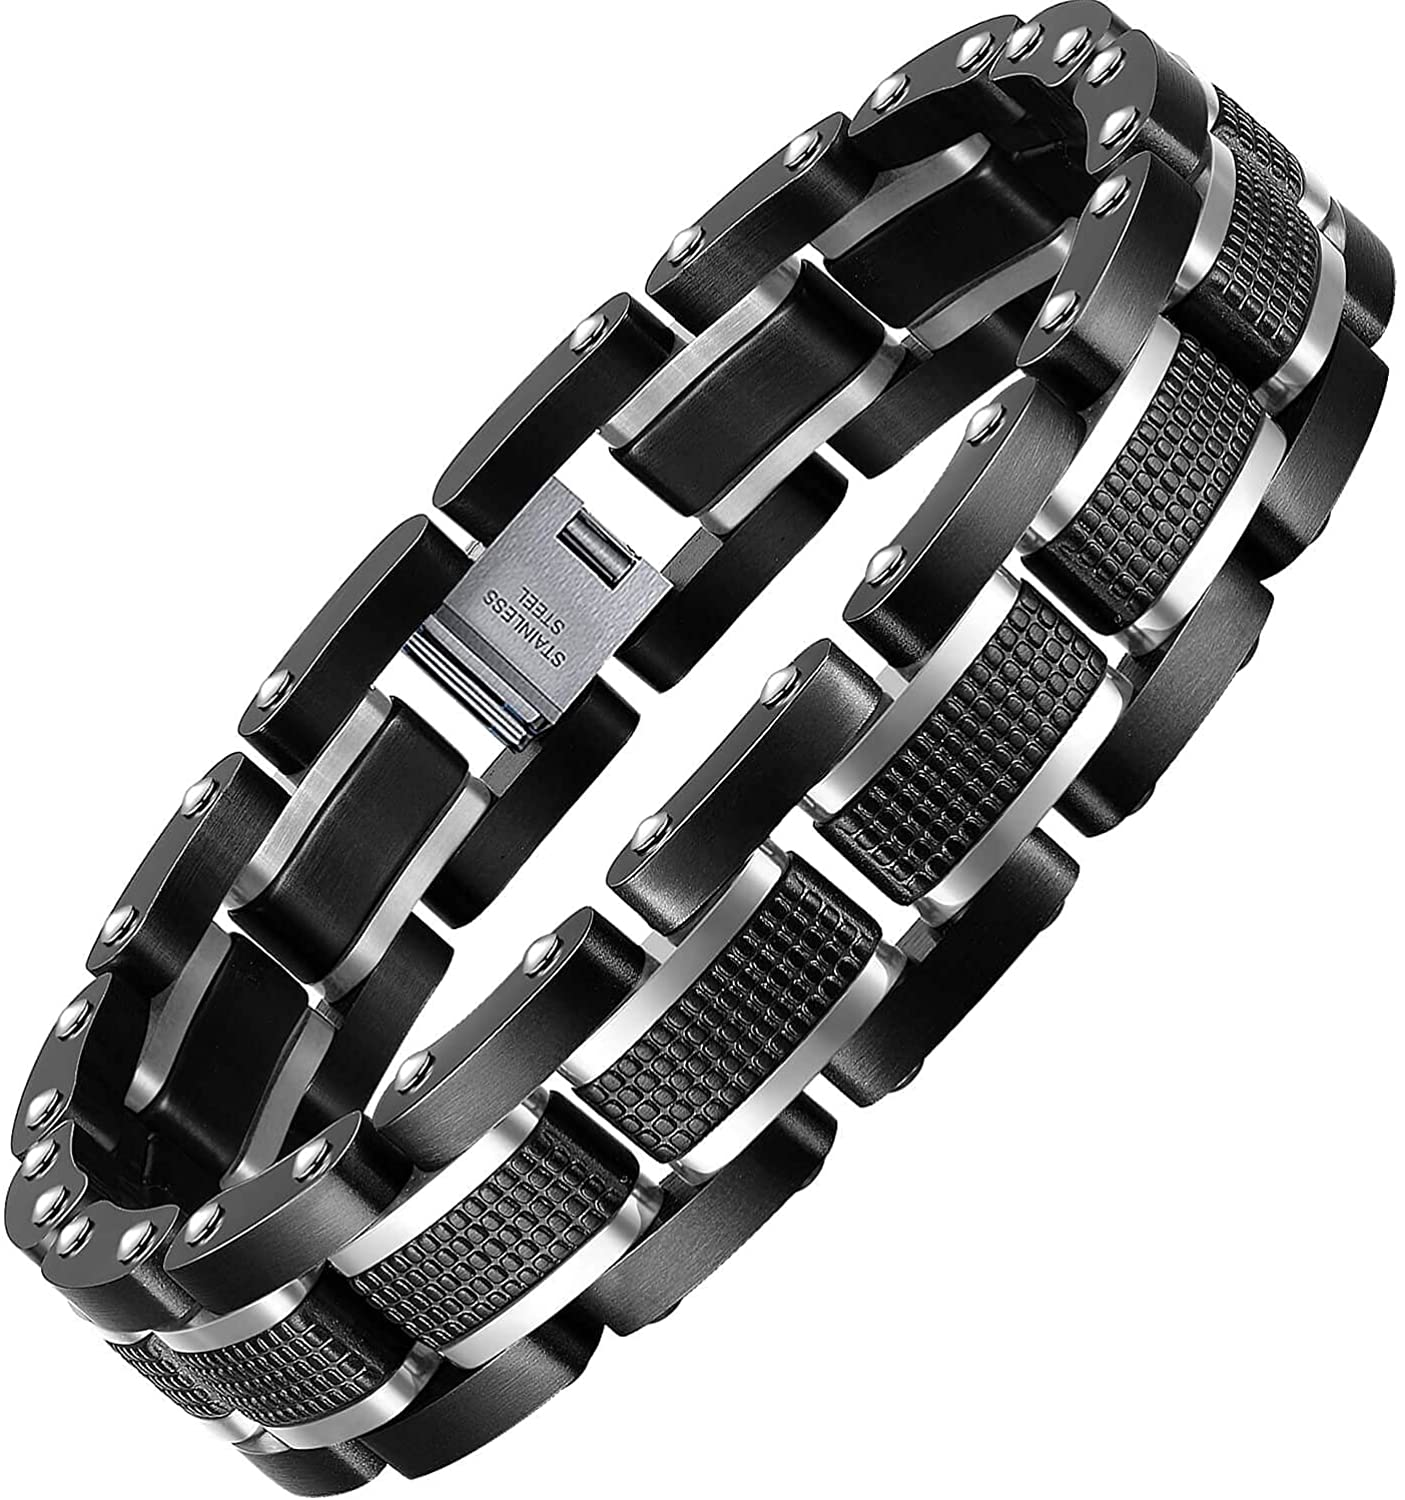 Zillaly Men's Stainless Steel [Alternative dealer] Two-Tone Diamond Quantity limited Link Brace Square